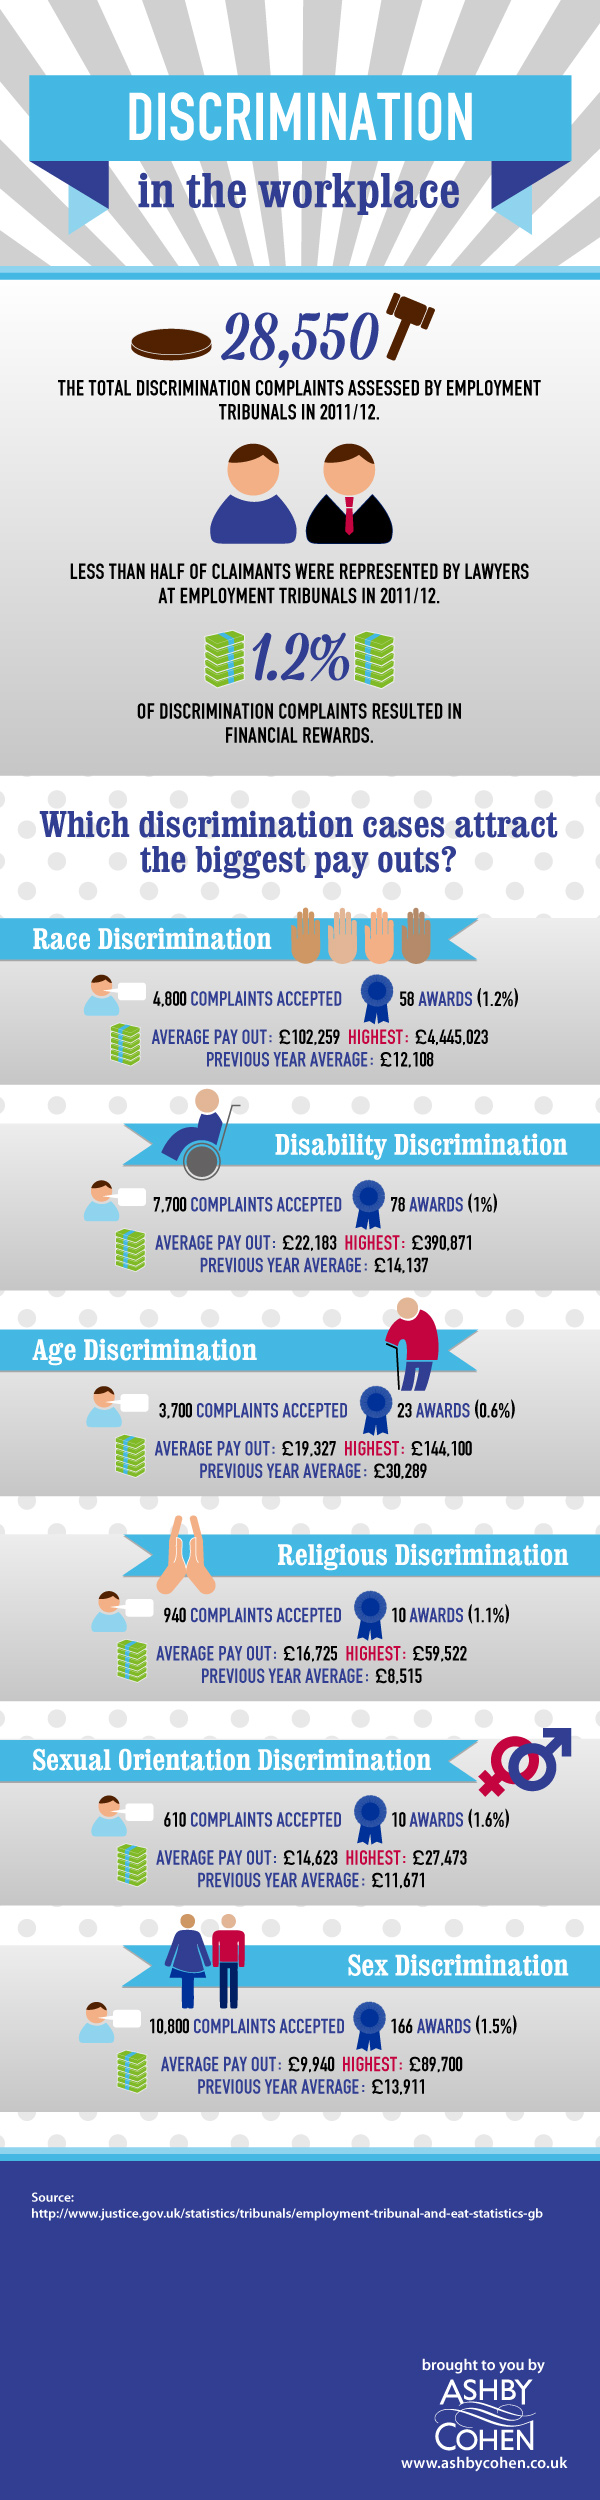 Discrimination Facts in the Workplace